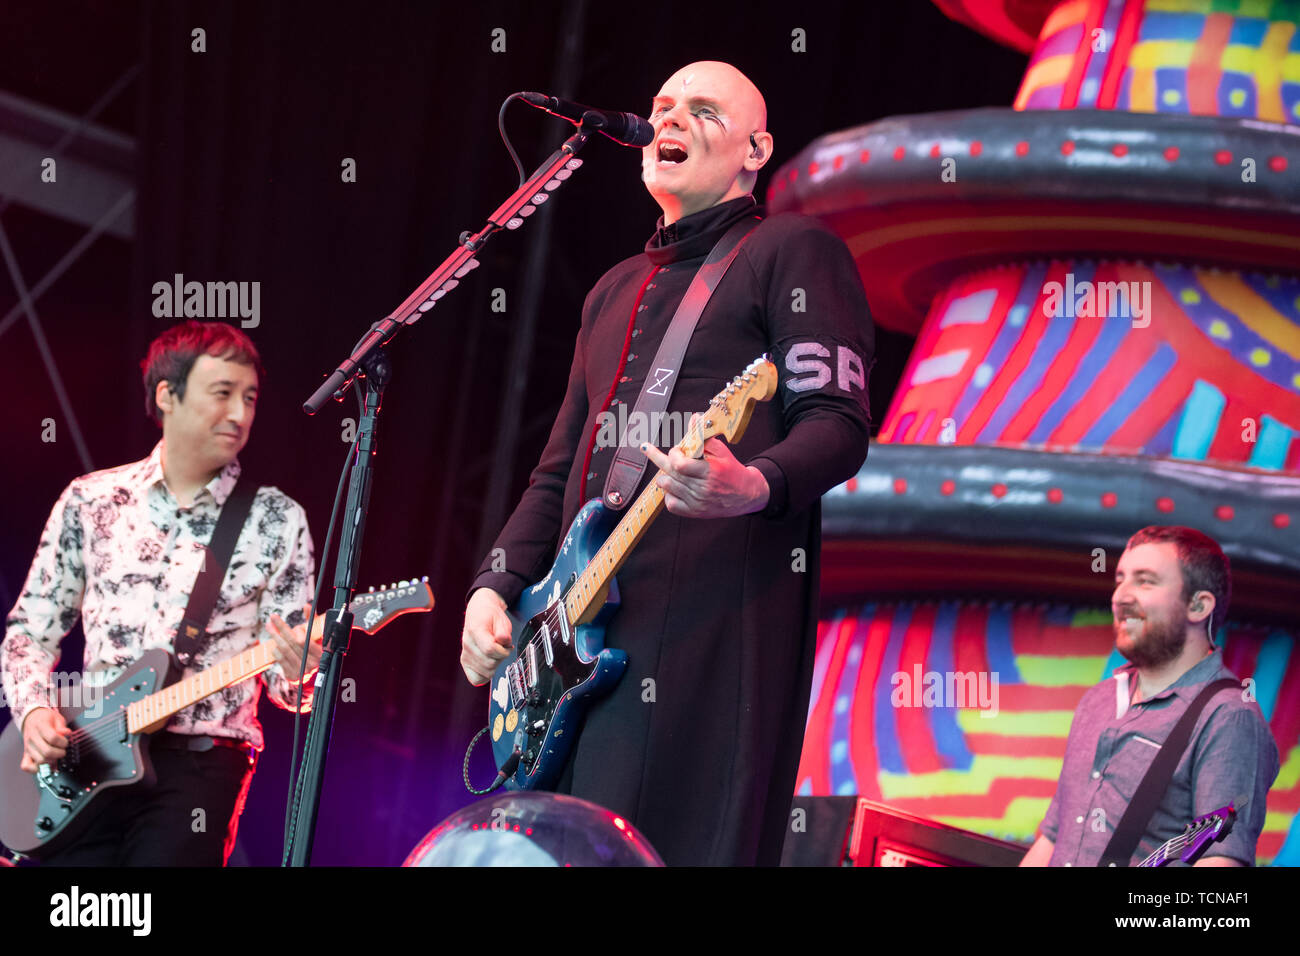 Nuremberg, Germany. 09th June, 2019. Billy Corgan (M), frontman of the US-American alternative rock band The Smashing Pumpkins, is on stage at the open-air festival 'Rock im Park'. From 7 to 9 June, the festival had a total of around 75 music acts on its programme and around 70,000 guests were expected. Credit: Daniel Karmann/dpa/Alamy Live News - Stock Image